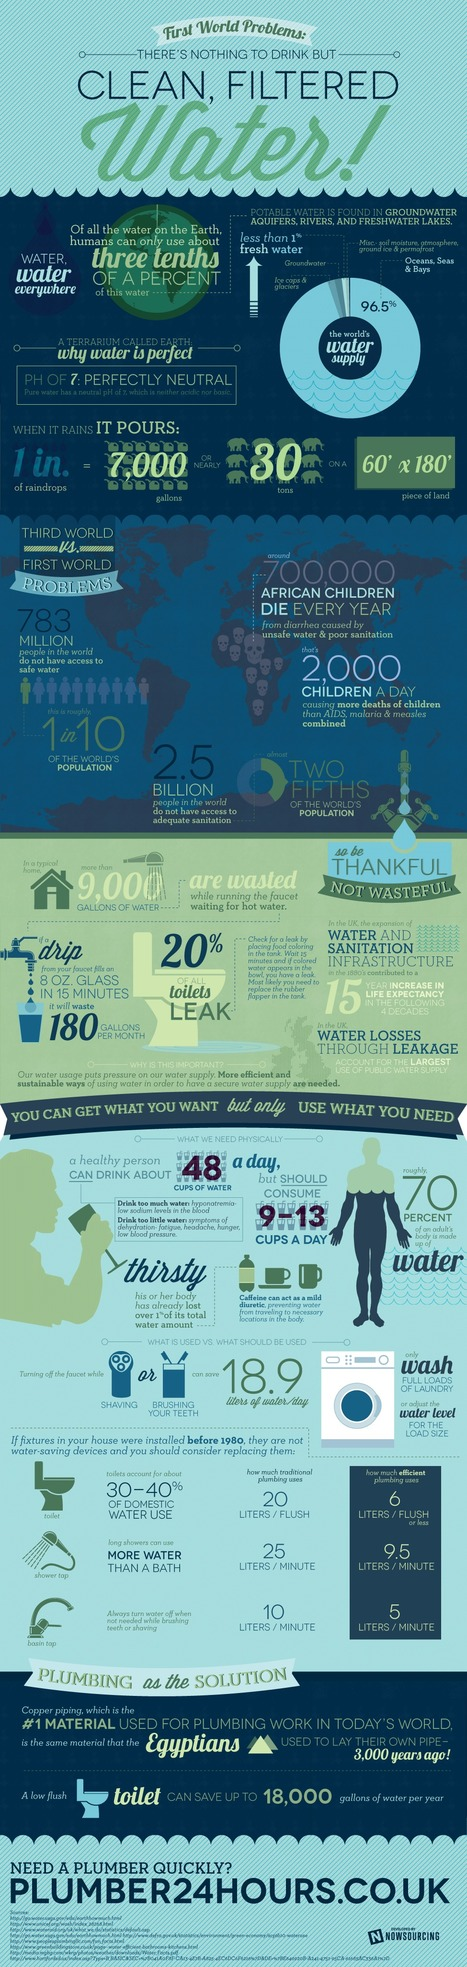 Water: Global facts + statistics [infographic] | Social Media, Communications and Creativity | Scoop.it